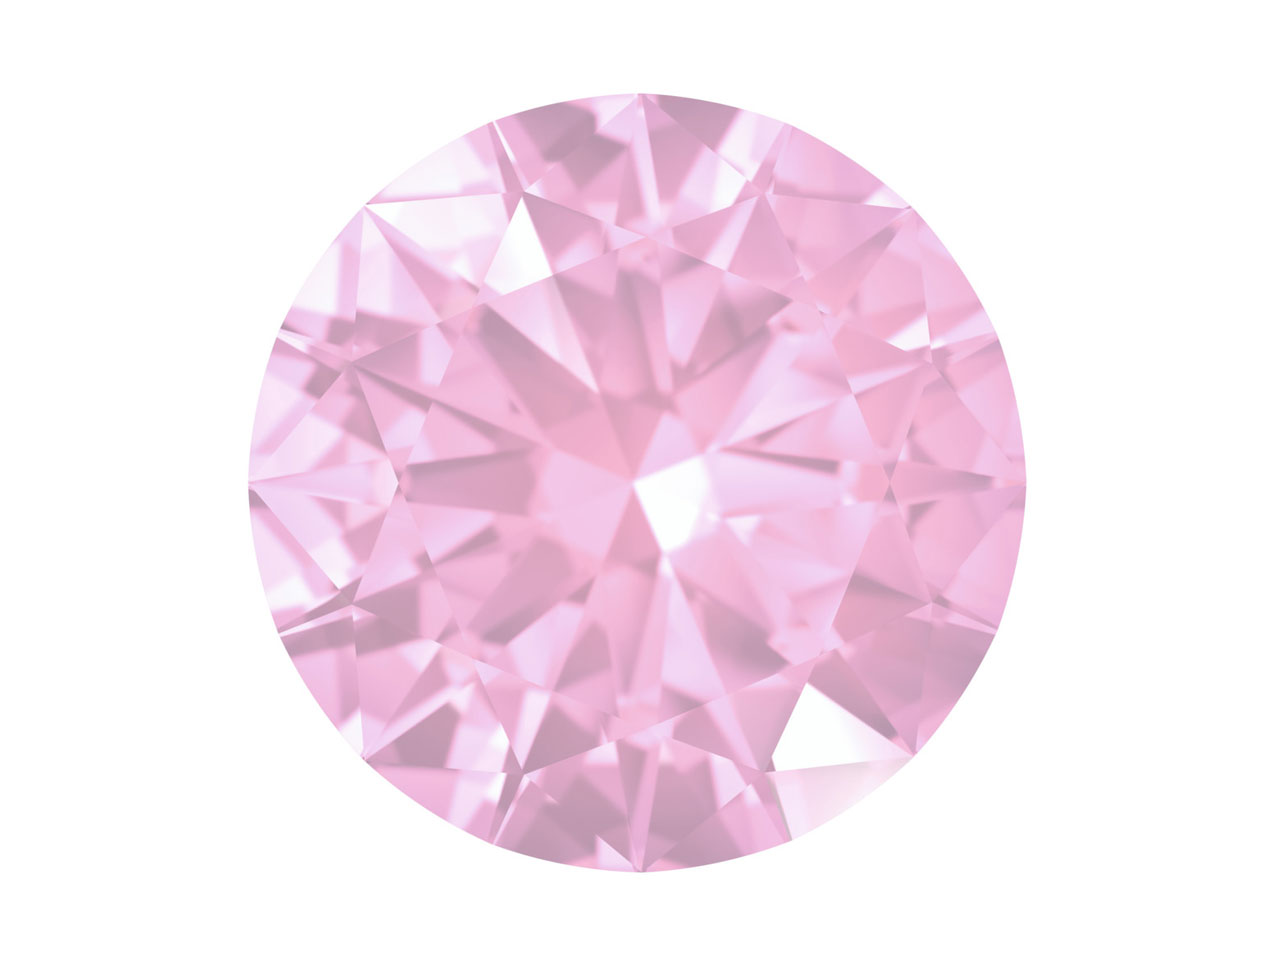 Swarovski Gemstones Pink Sapphire  Round Brilliant Cut 1.75mm Very    Light Pink